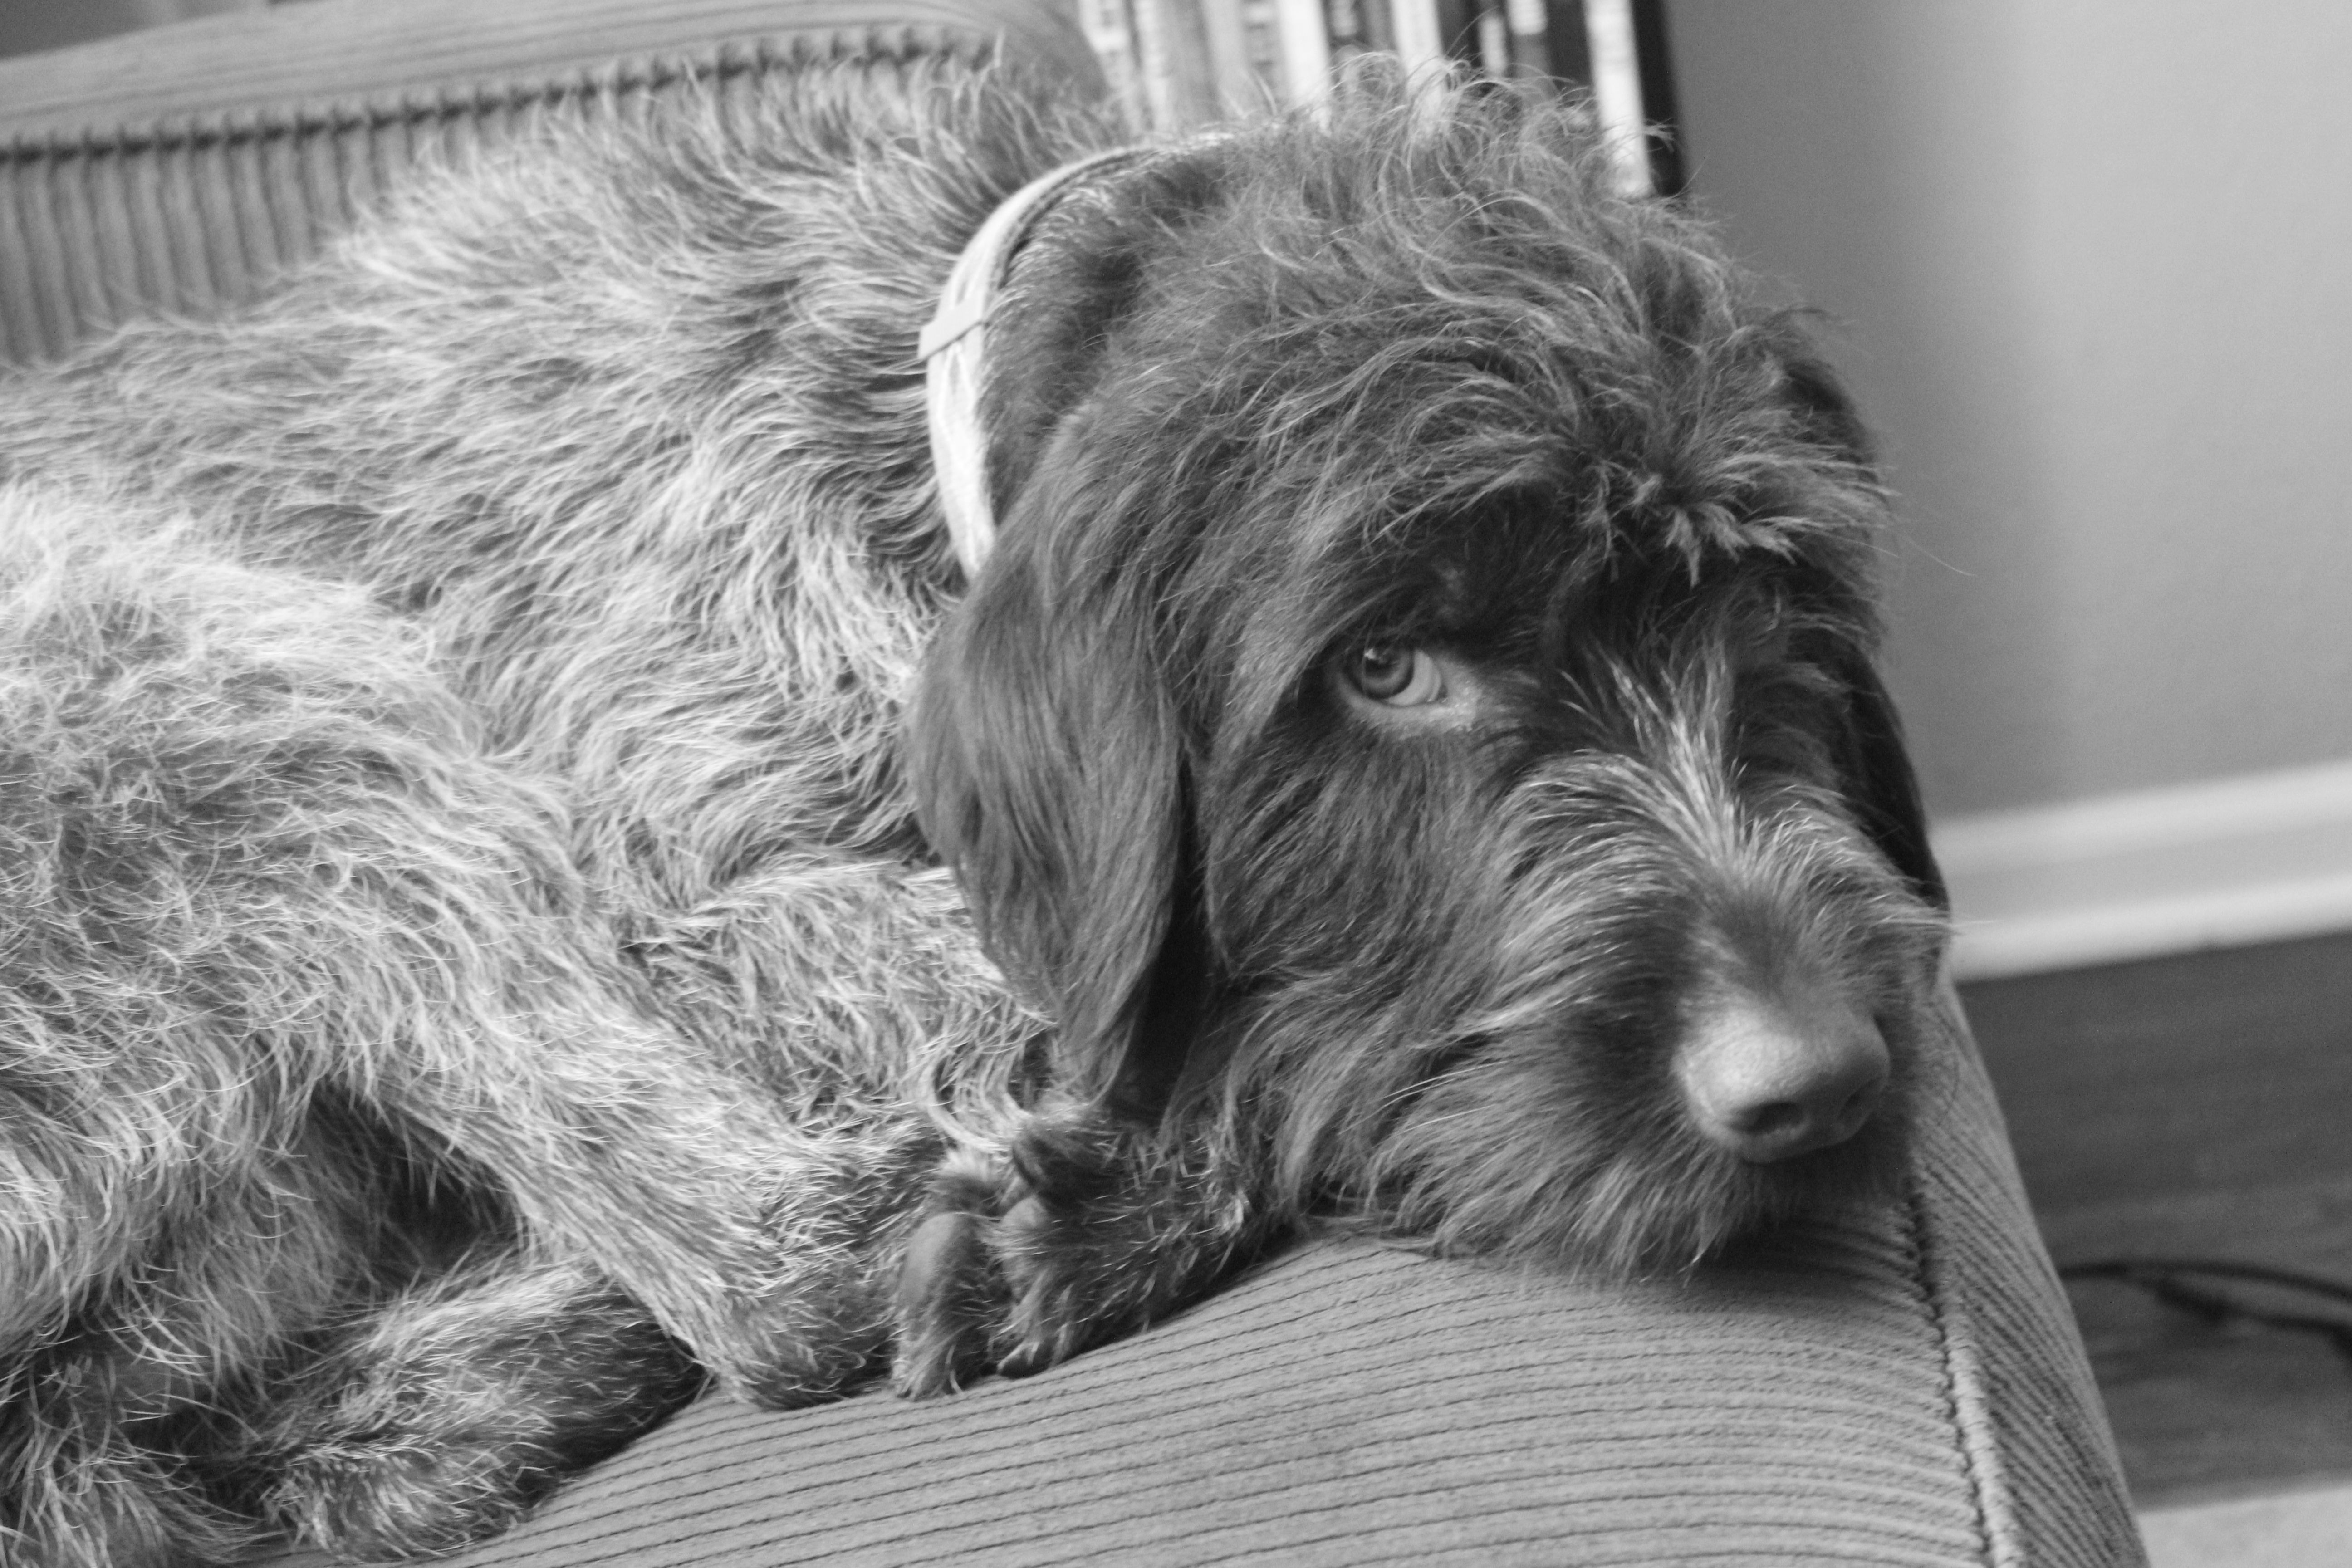 My one and half year old wirehaired pointing griffon, Draper.  He's grown up so fast!